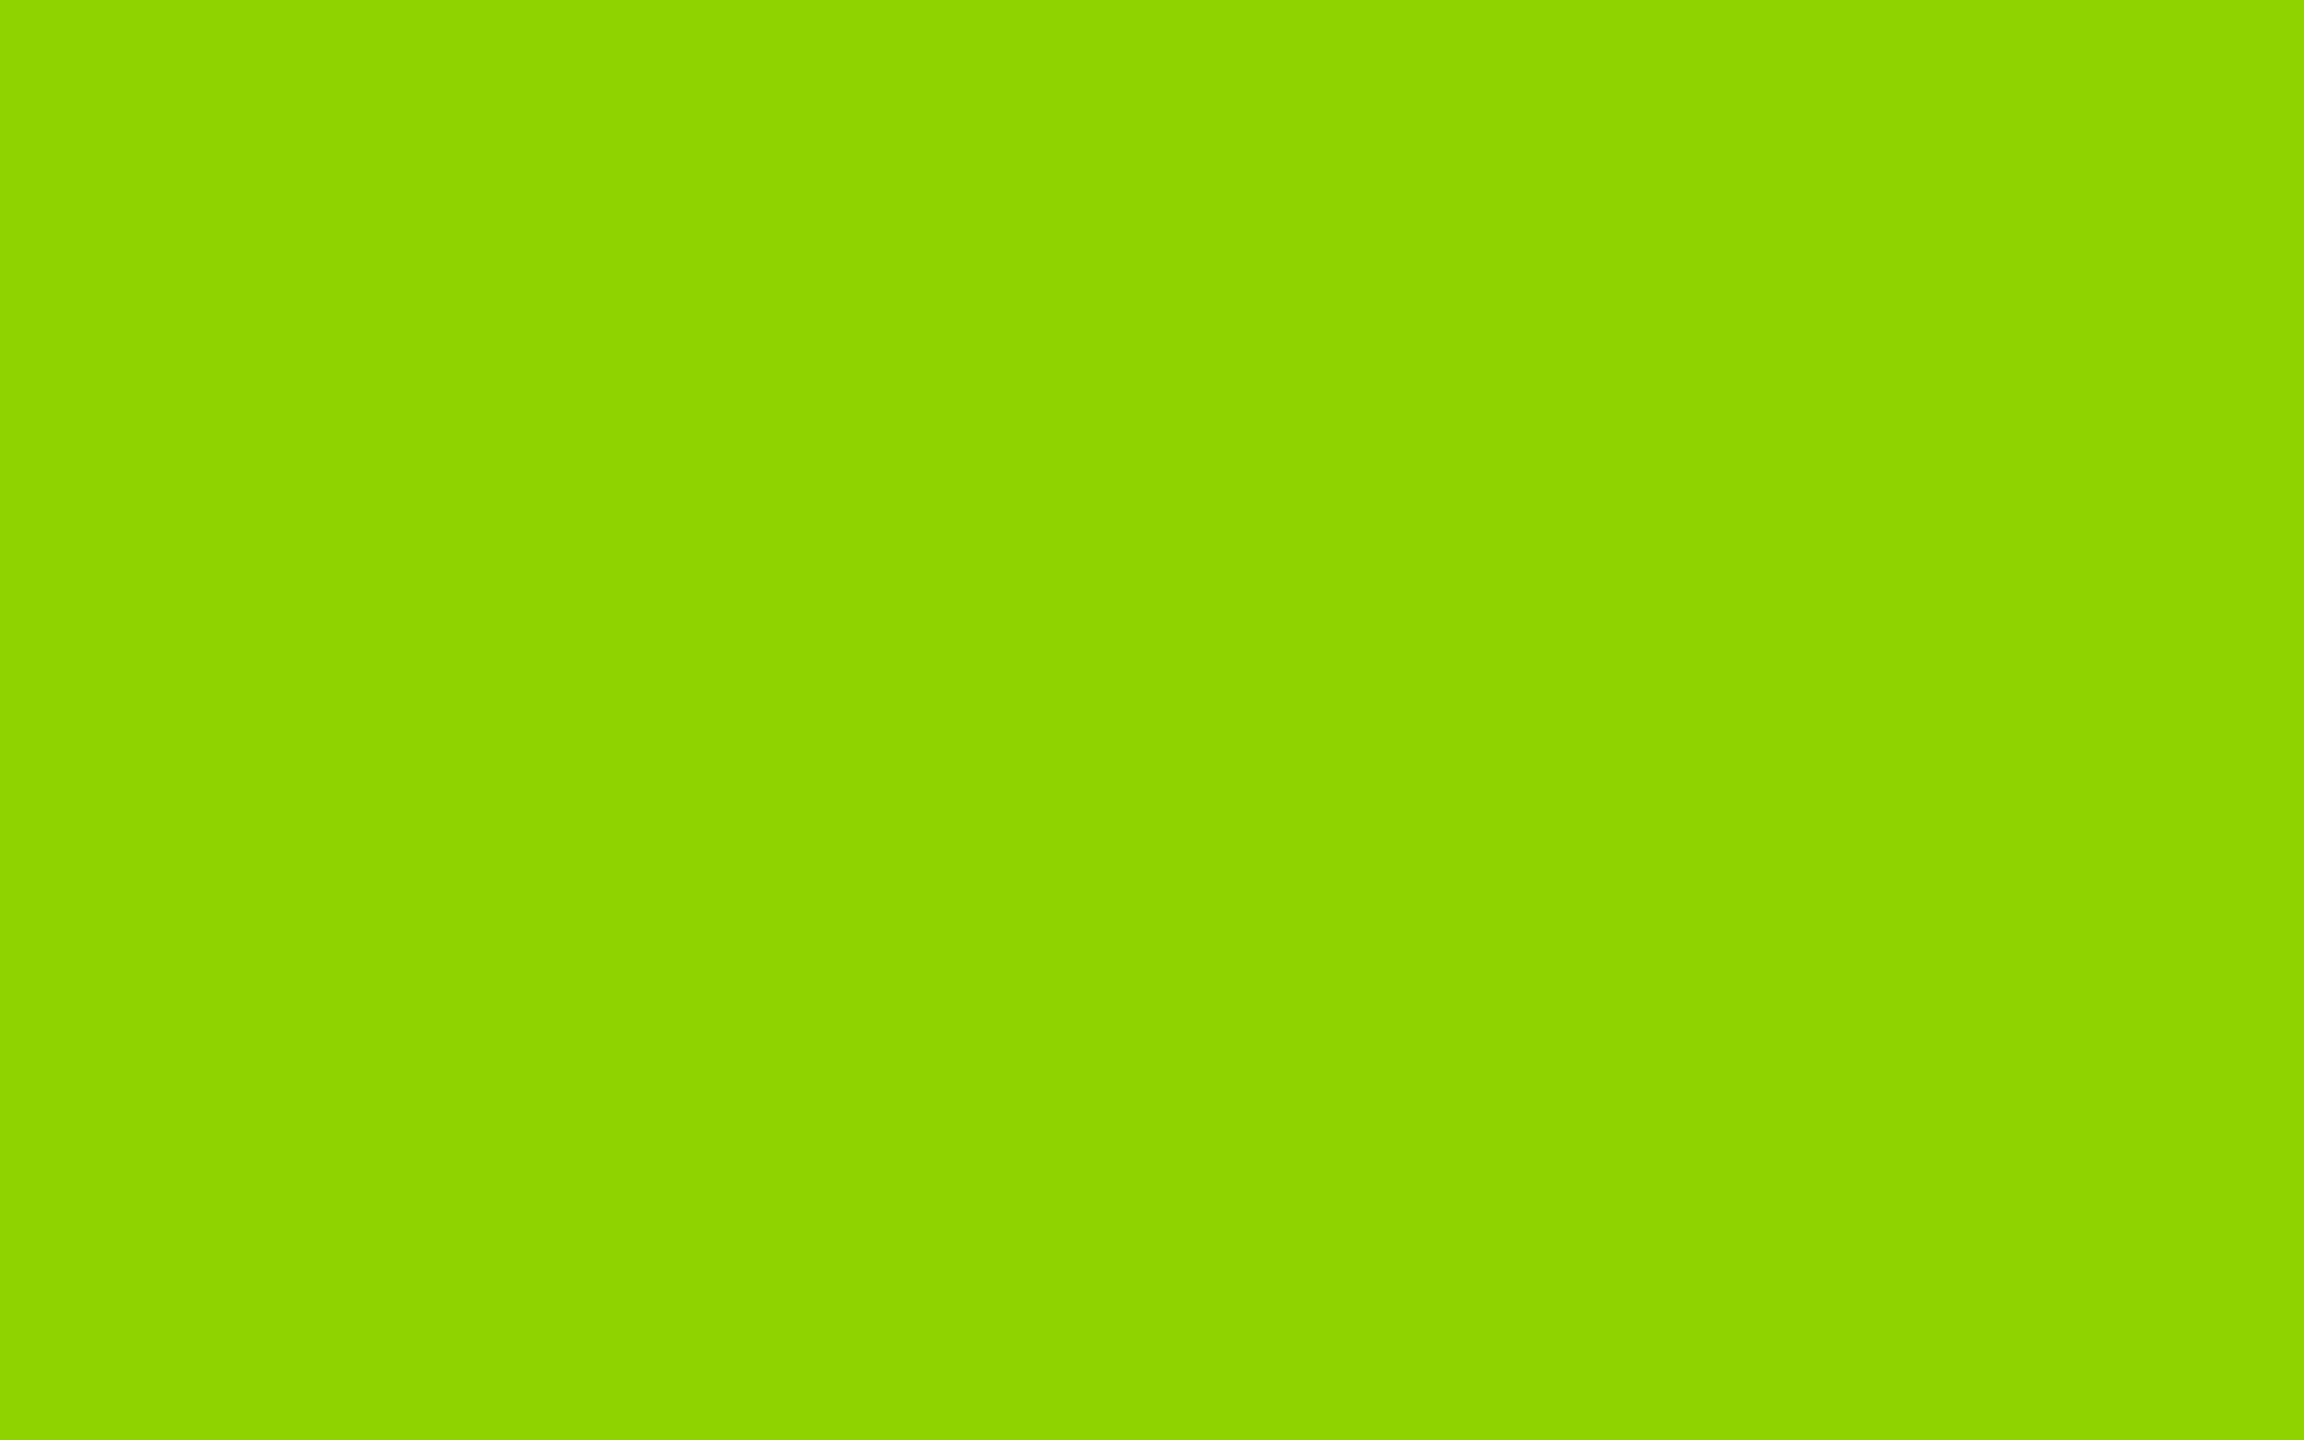 2304x1440 Sheen Green Solid Color Background